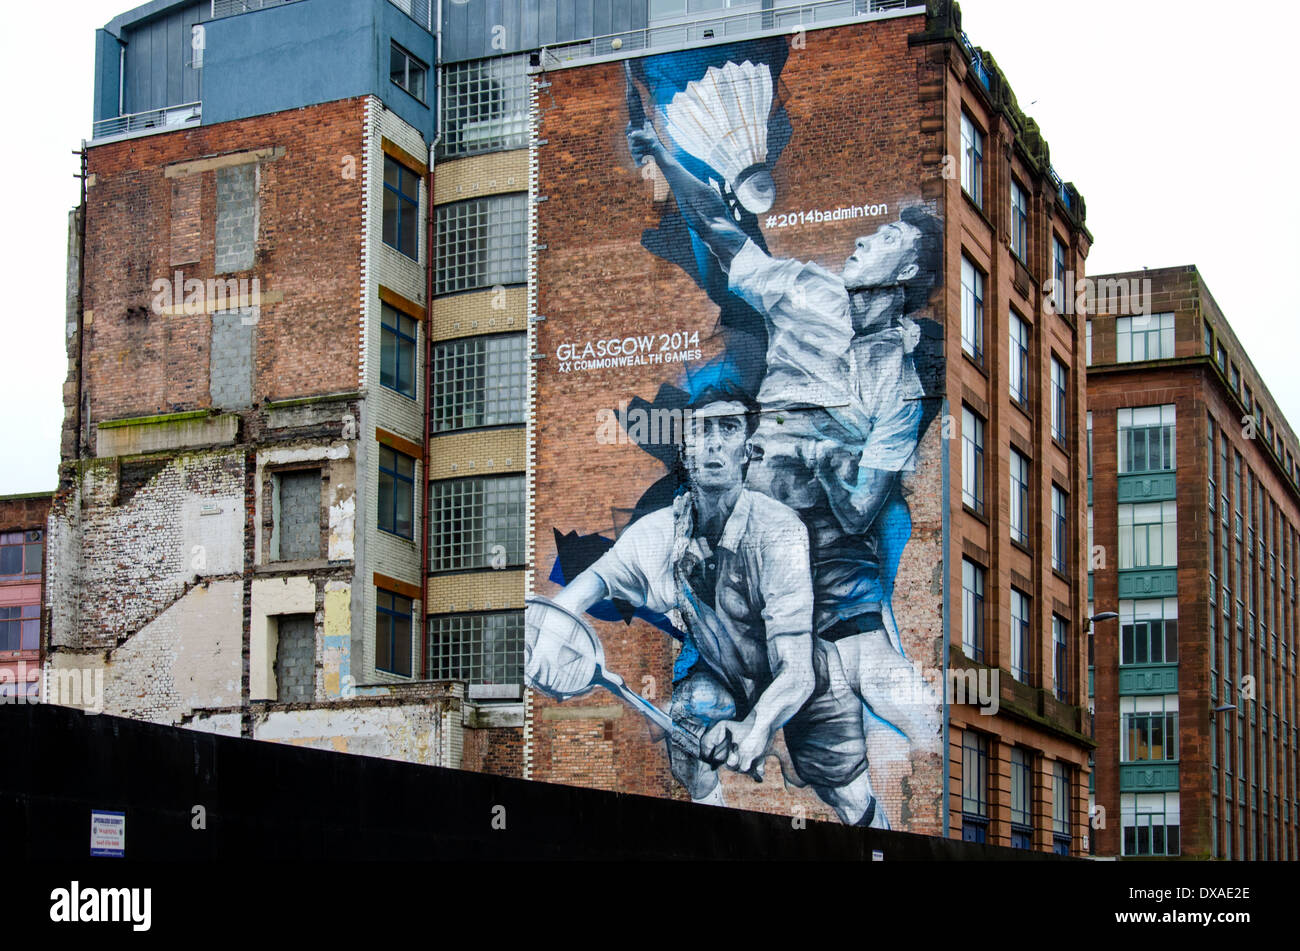 A mural depicting two badminton players on a building in Glasgow city centre advertising the 2014 Commonwealth Games. - Stock Image